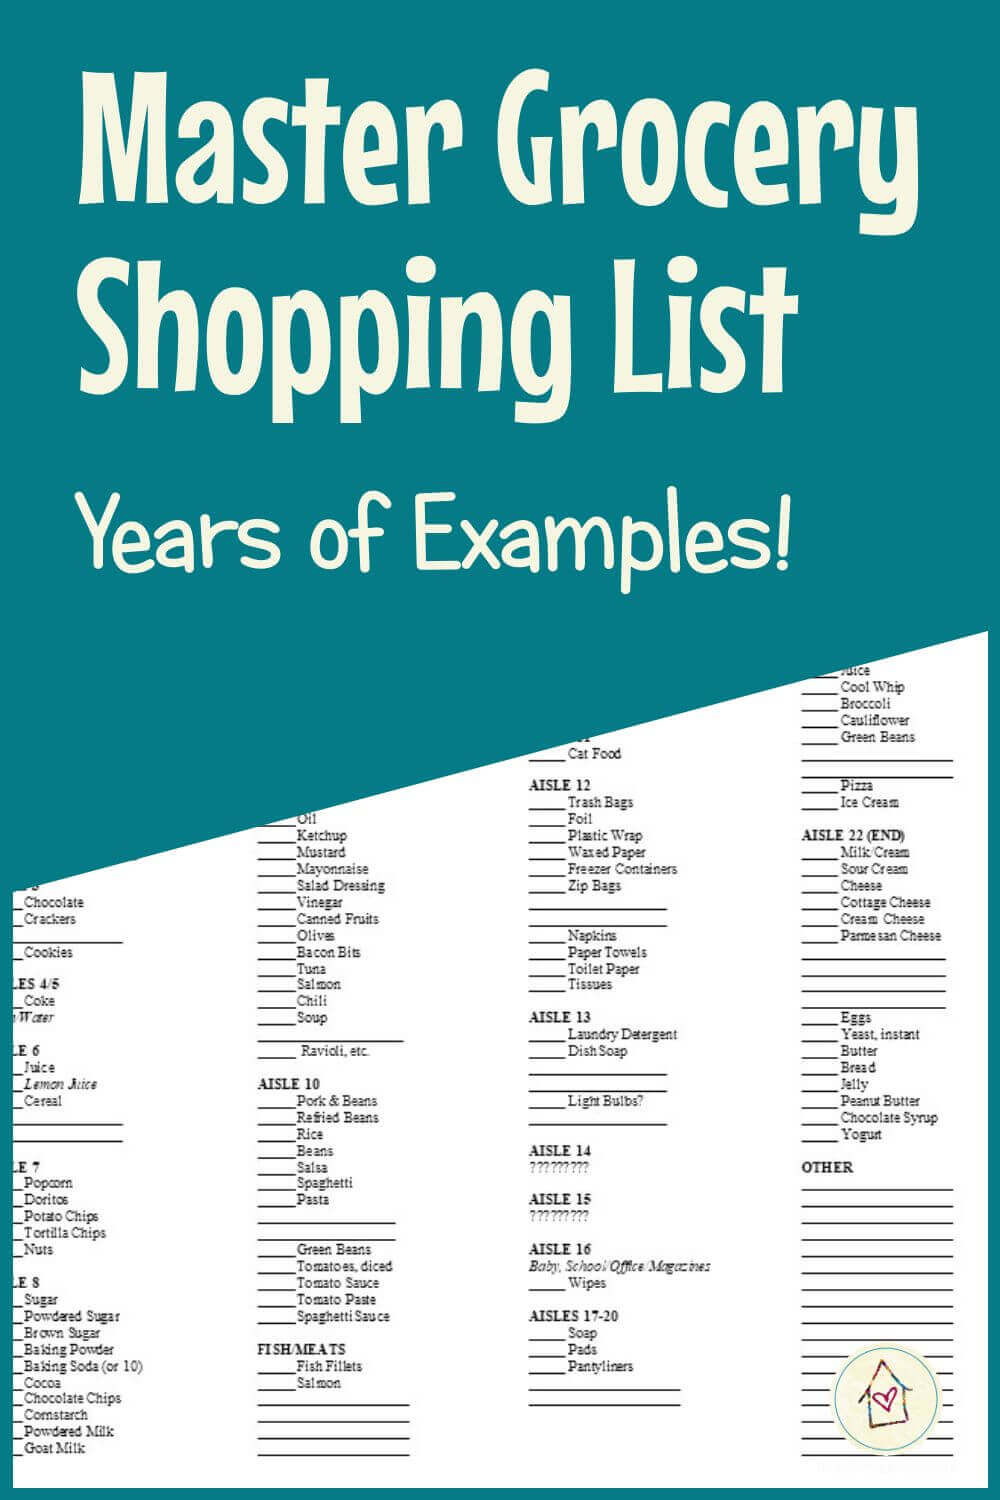 Master Grocery Shopping List: Years of Examples! (pinnable)